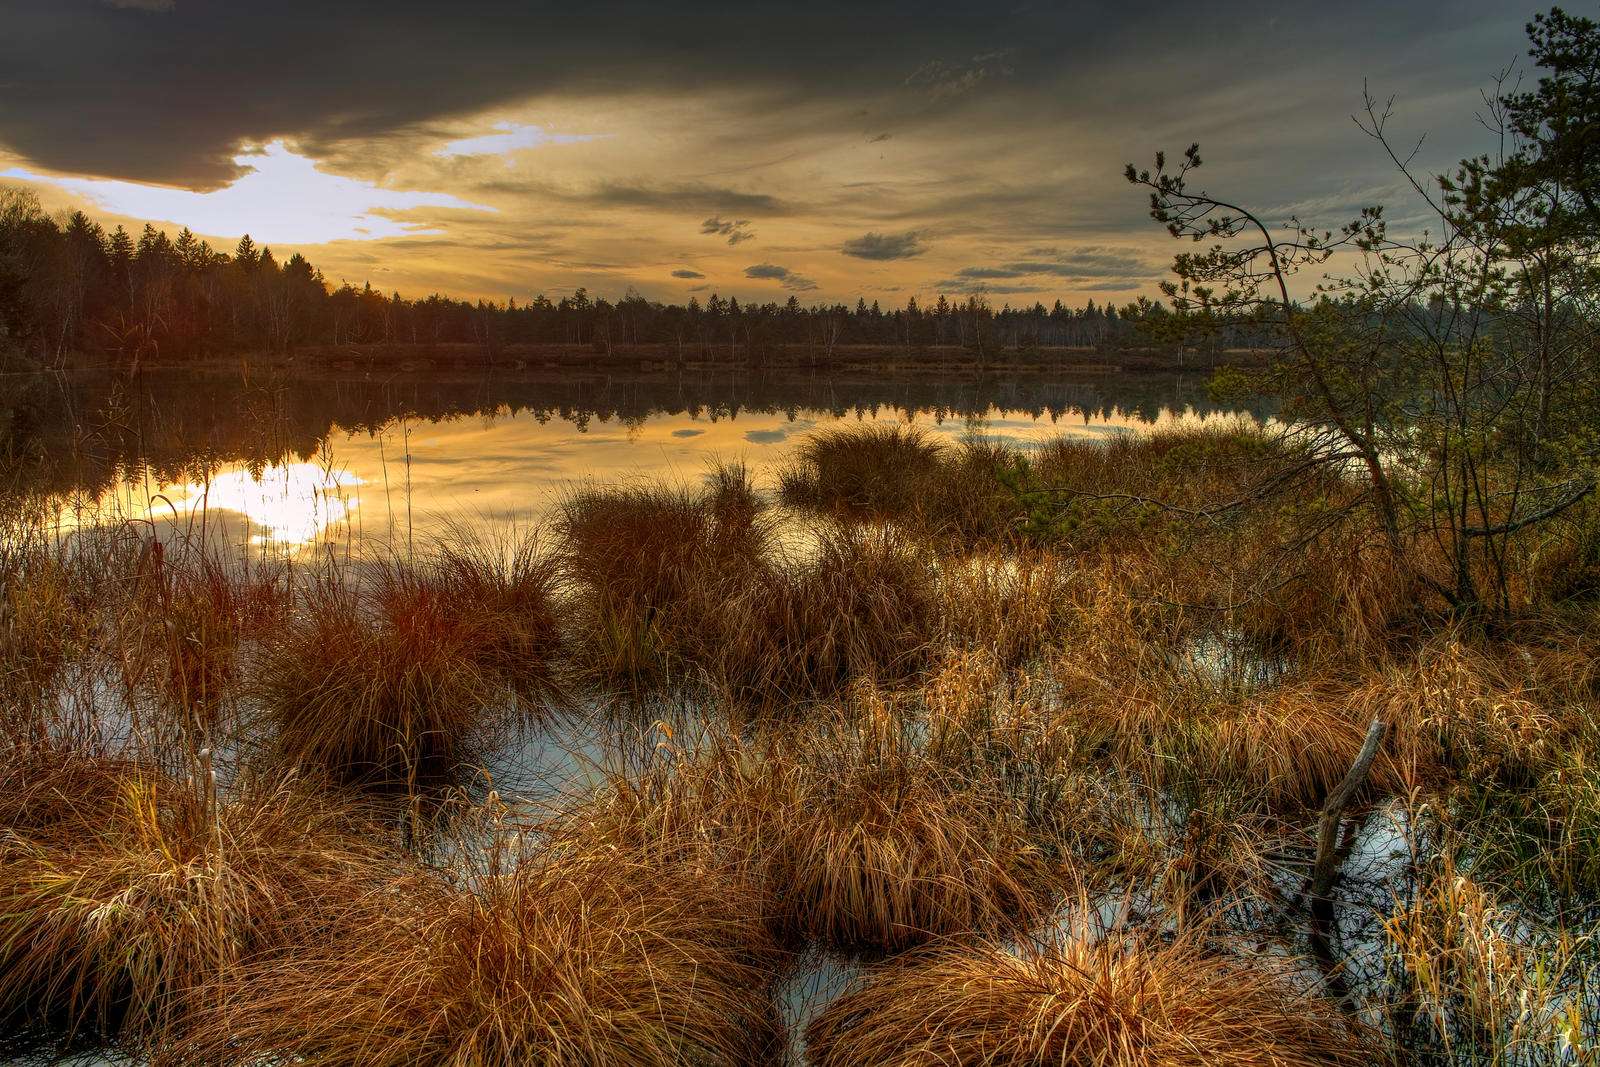 Moor Sunset By Burtn On DeviantArt